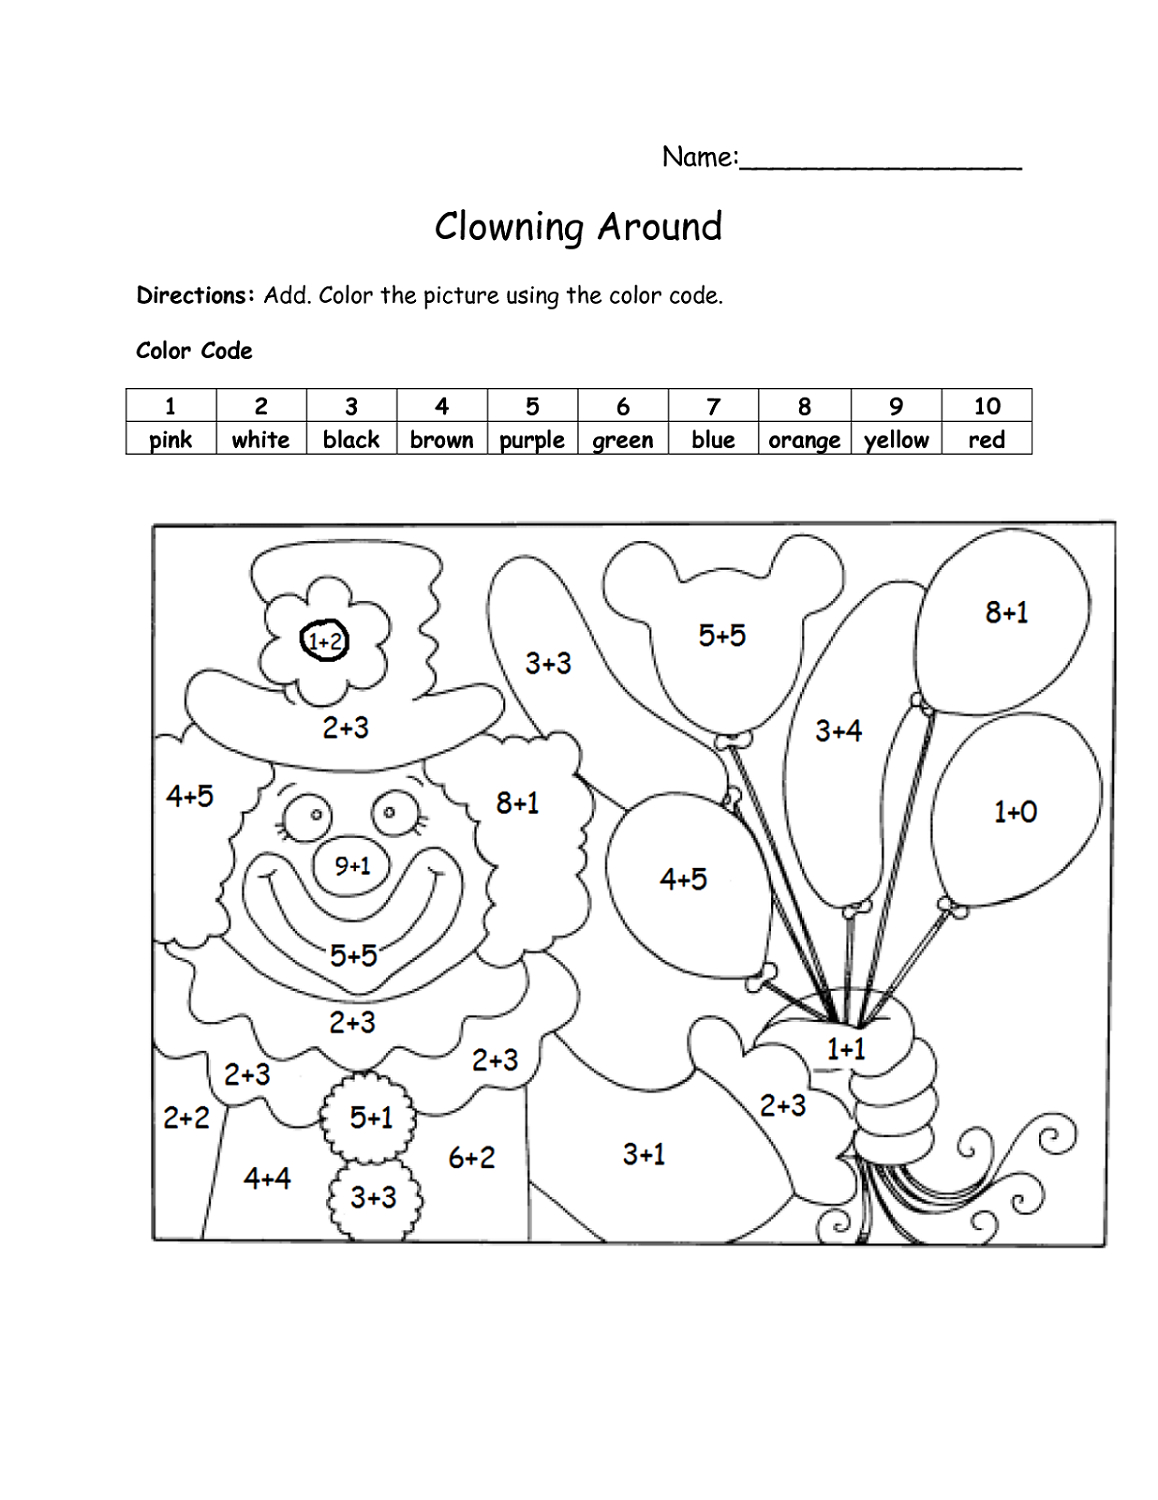 coloring pictures for grade 2 addition coloring pages to download and print for free for pictures coloring grade 2